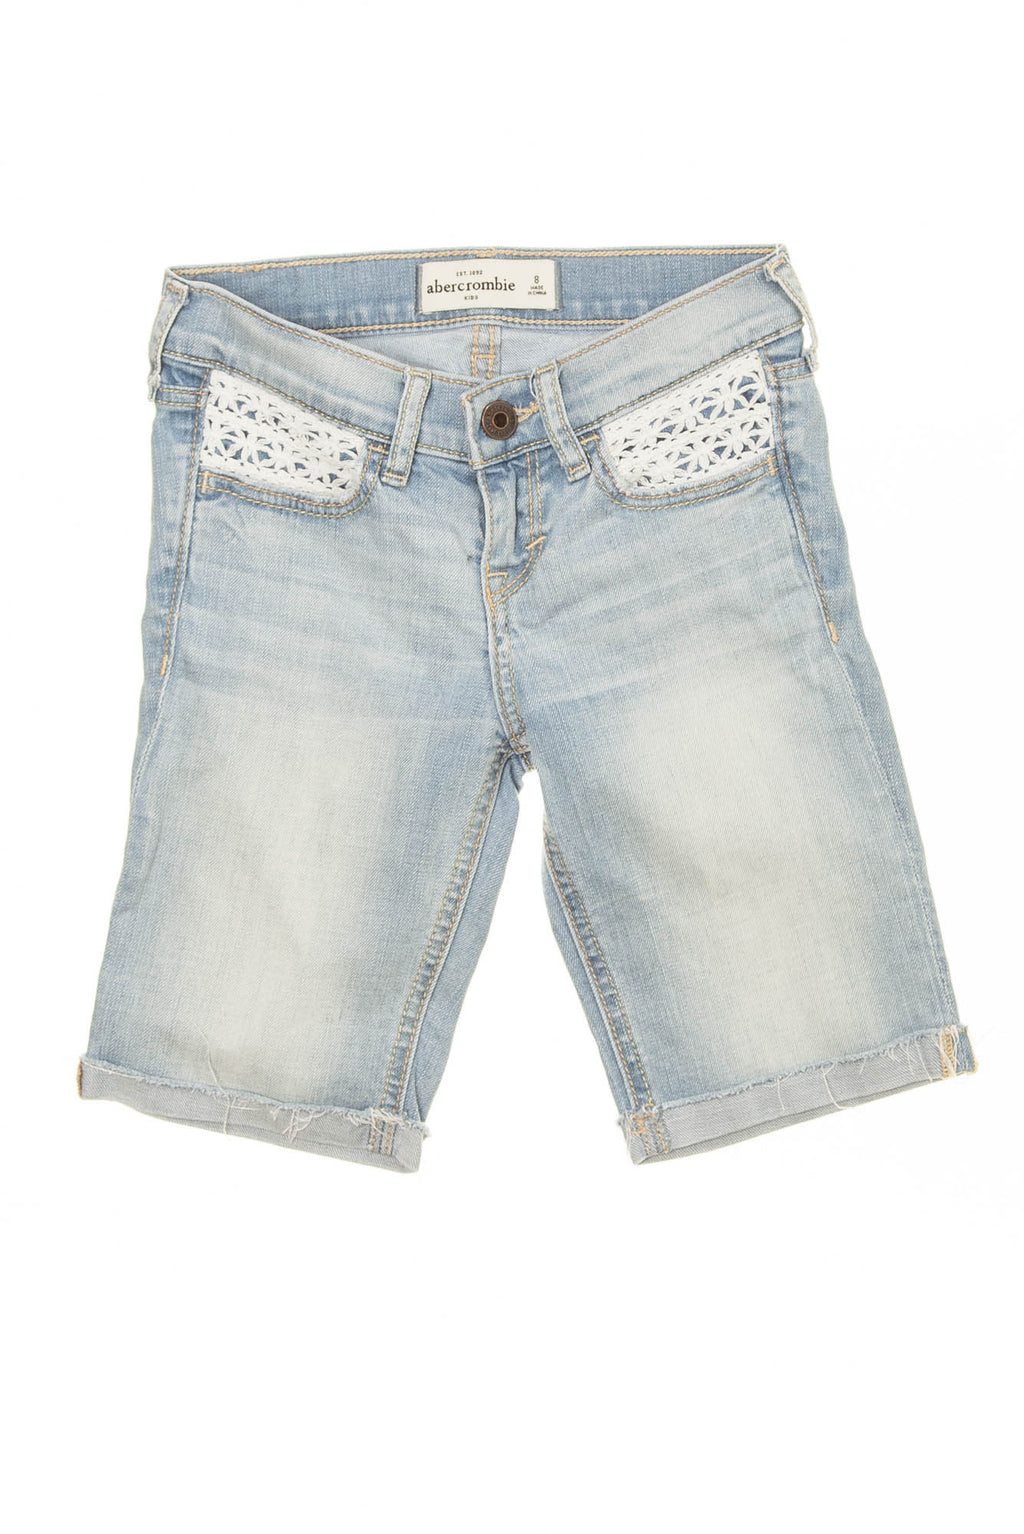 Abercrombie Kids - Light Wash Bermuda Shorts - 6X